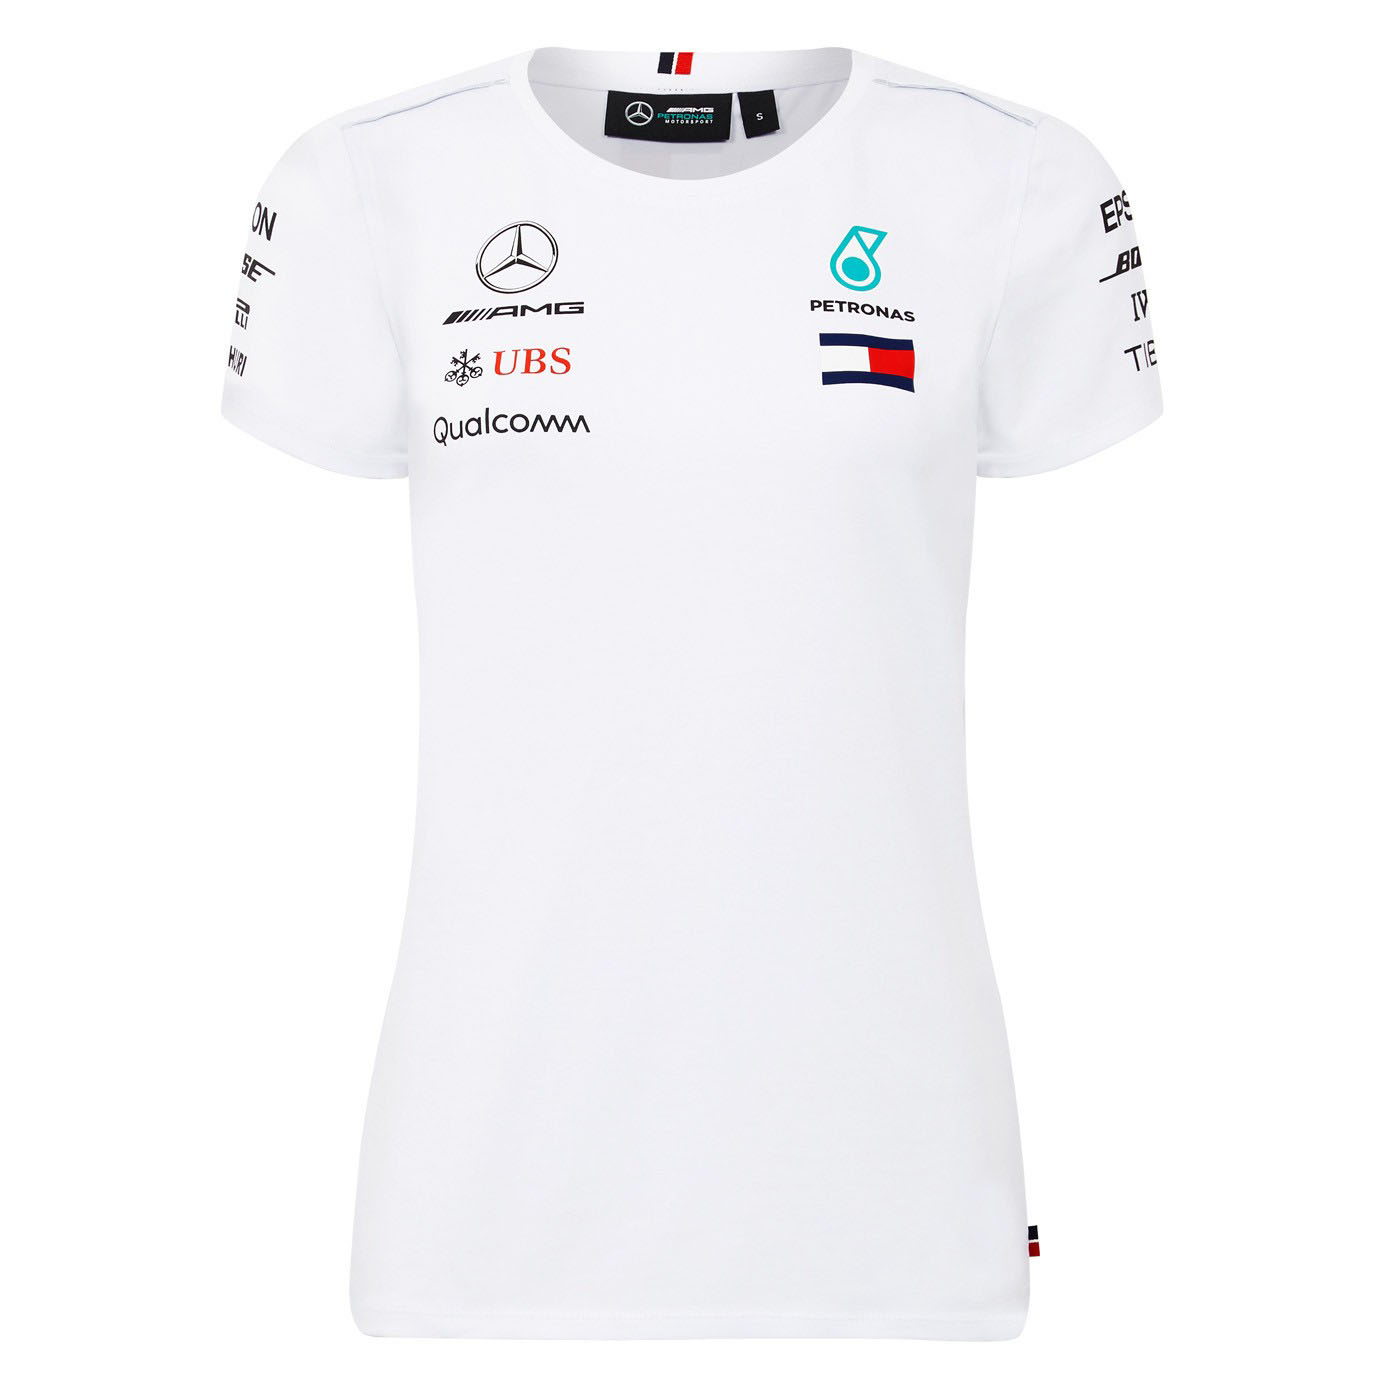 2018 lewis hamilton t shirt cap twin pack official mercedes f1 merchandise ebay. Black Bedroom Furniture Sets. Home Design Ideas